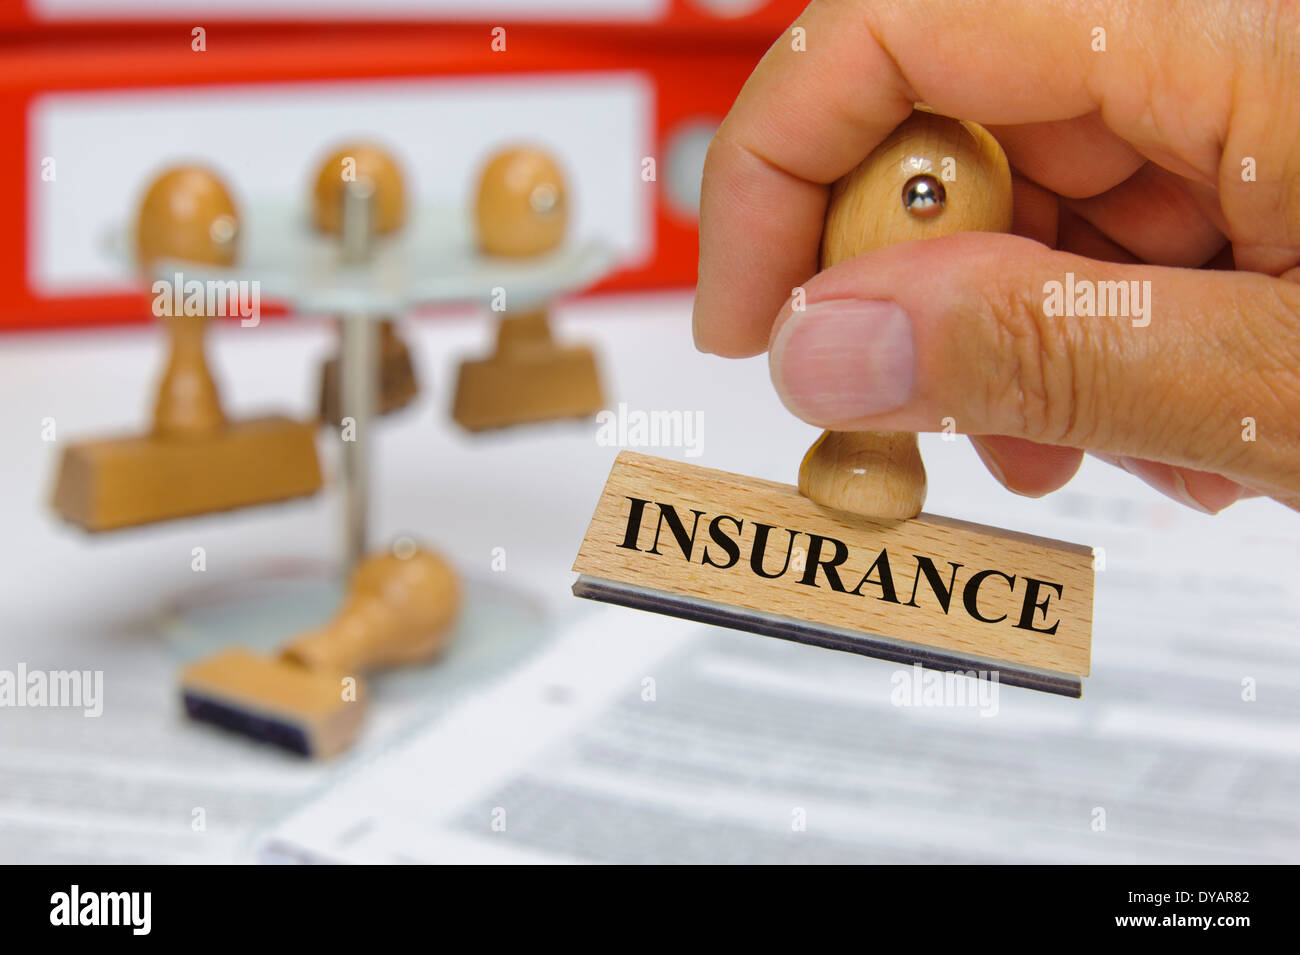 insurance marked on rubber stamp in hand - Stock Photo